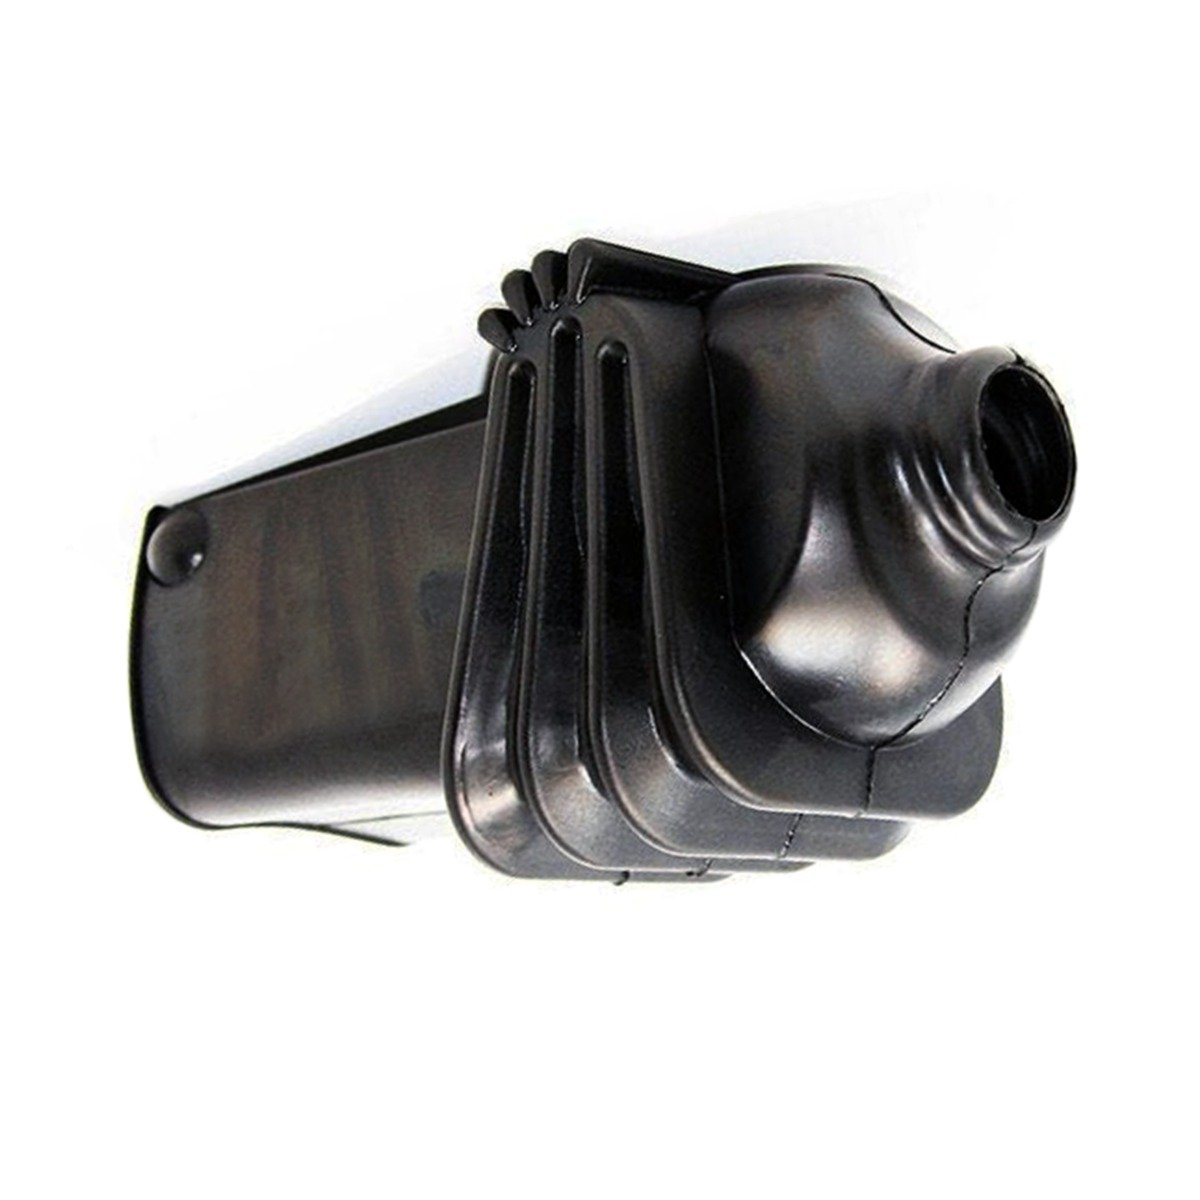 Rubber Steering Boot 6680471 Compatible With Bobcat Skid Steer Loader 751 753 763 773 863 864 873 883 963 S130 S150 S160 S175